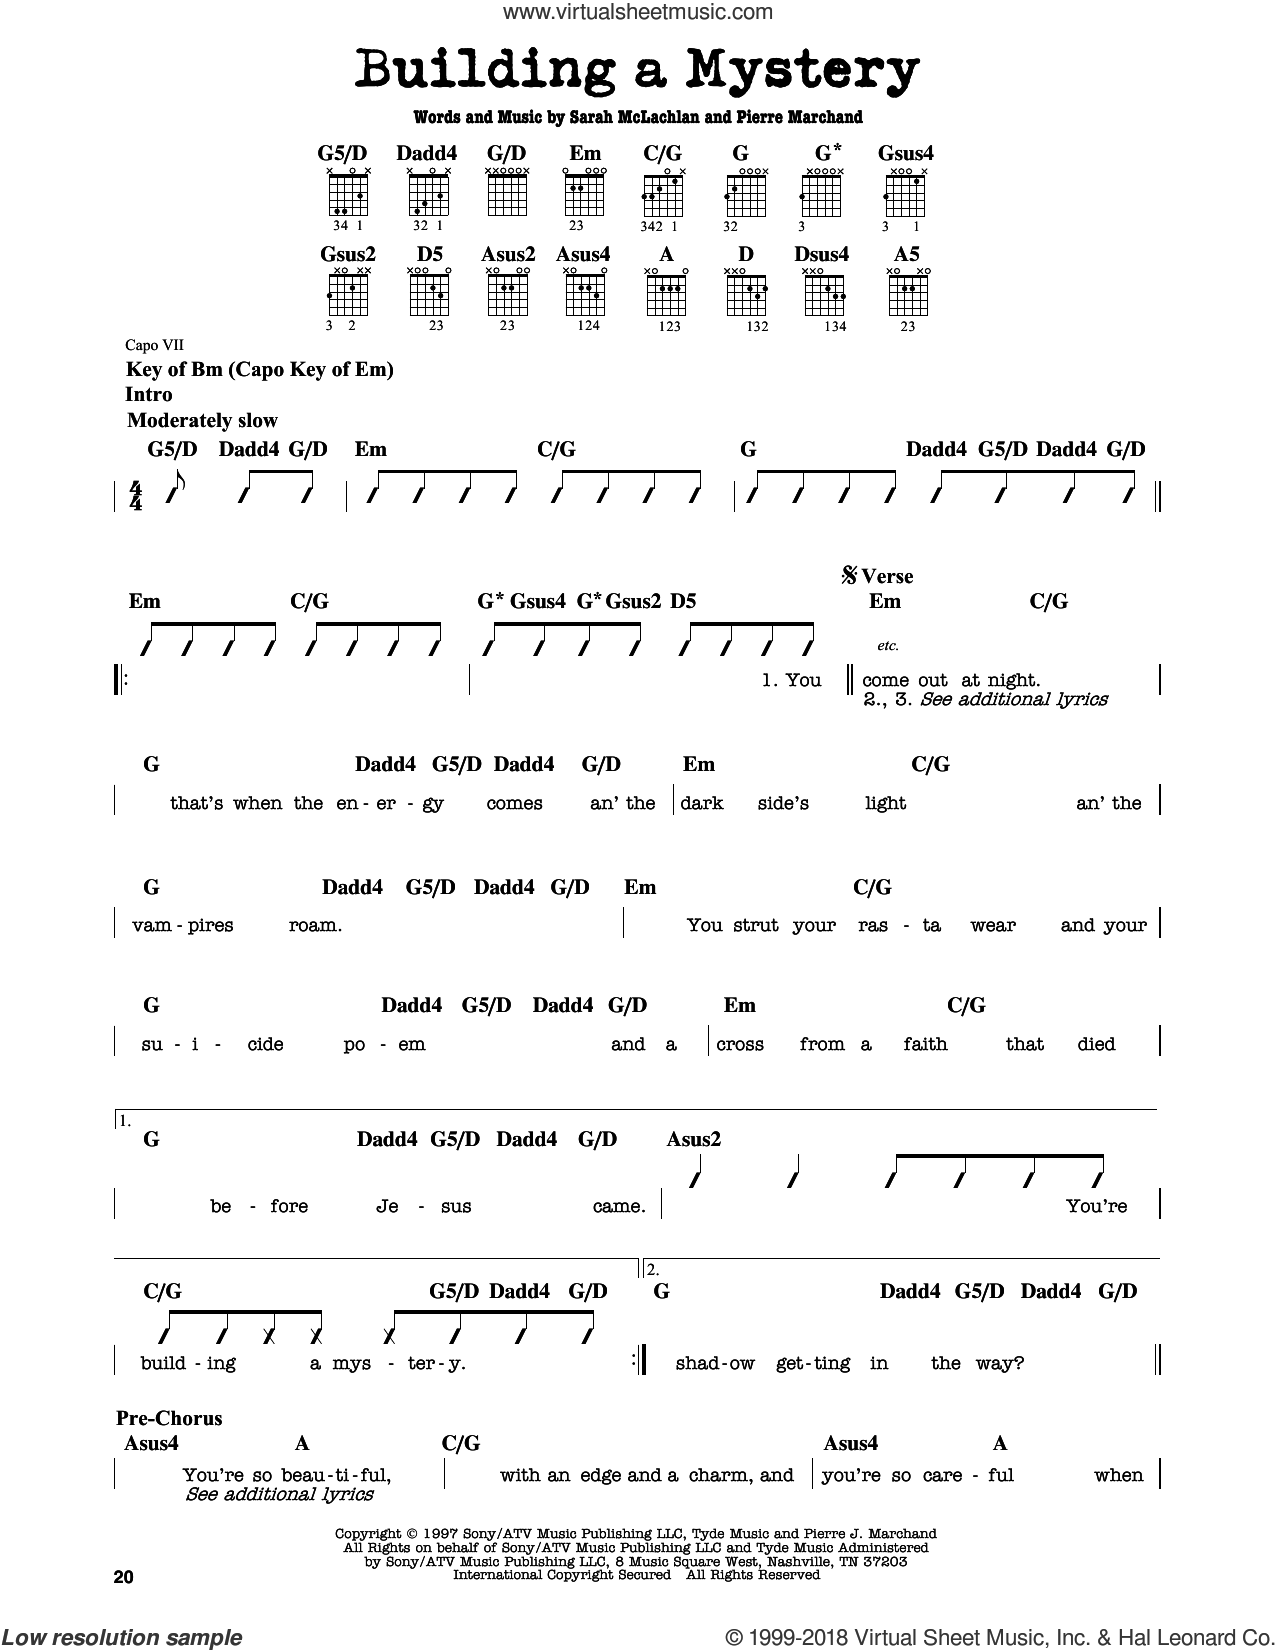 Building A Mystery sheet music for guitar solo (lead sheet) by Pierre Marchand and Sarah McLachlan. Score Image Preview.